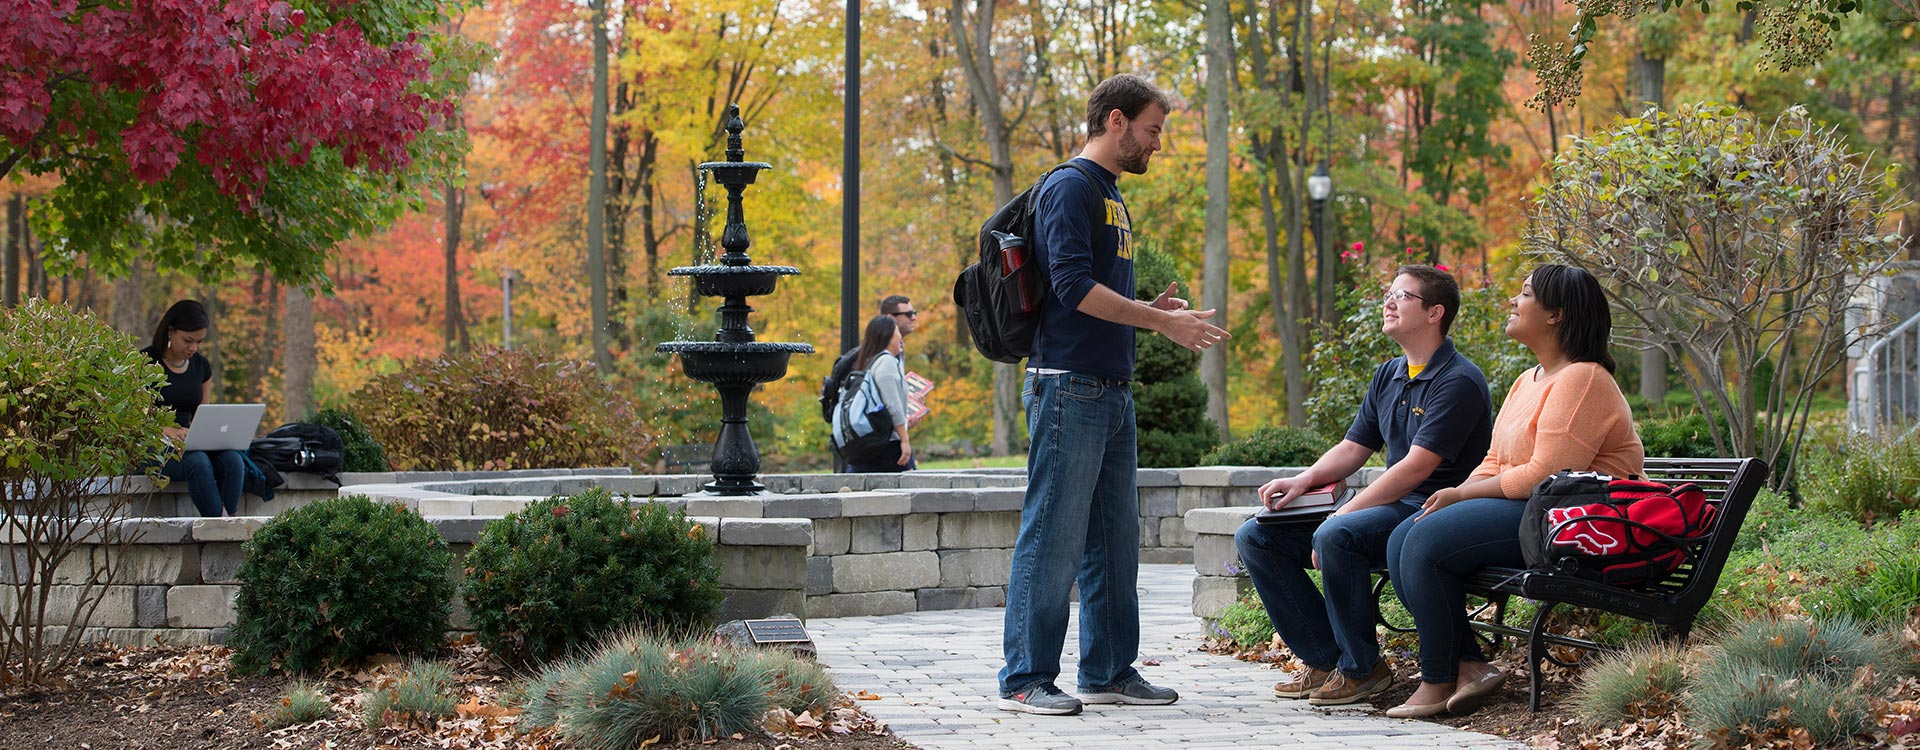 Three students conversing in a park